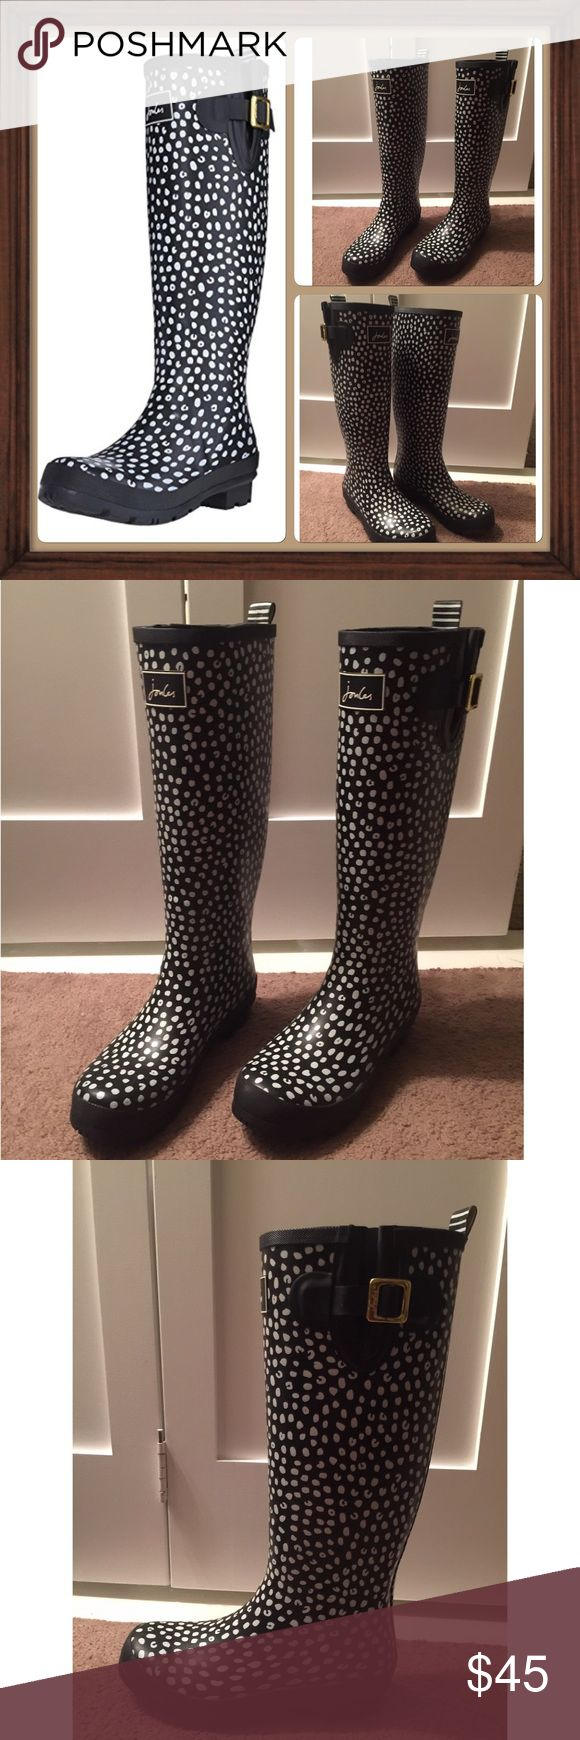 Beautiful Joules Welly rain boots size 8 tall These boots are just like new, I have only worn them two times. I am sad to sell but i have short boots and i just haven't worn these, so I decided to sell. Joules Shoes Winter & Rain Boots